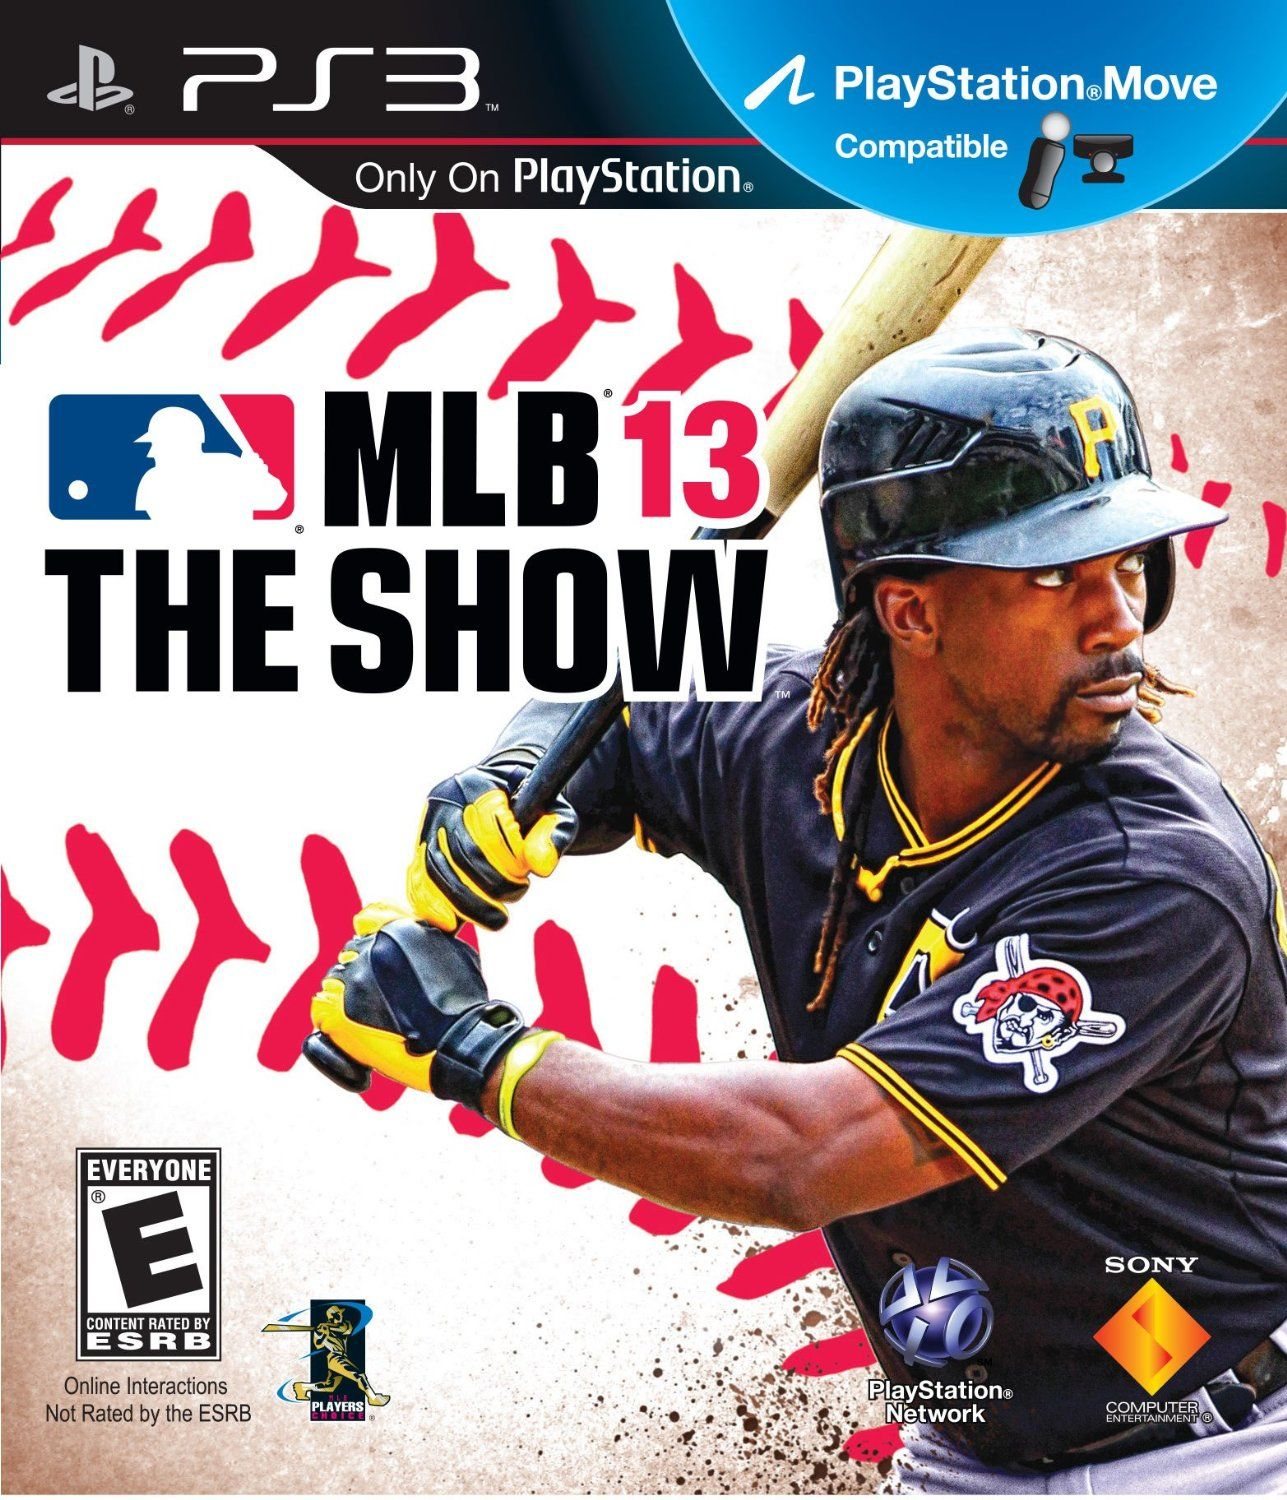 Mlb The Show Mlb The Show Video Games For Kids Sports Games